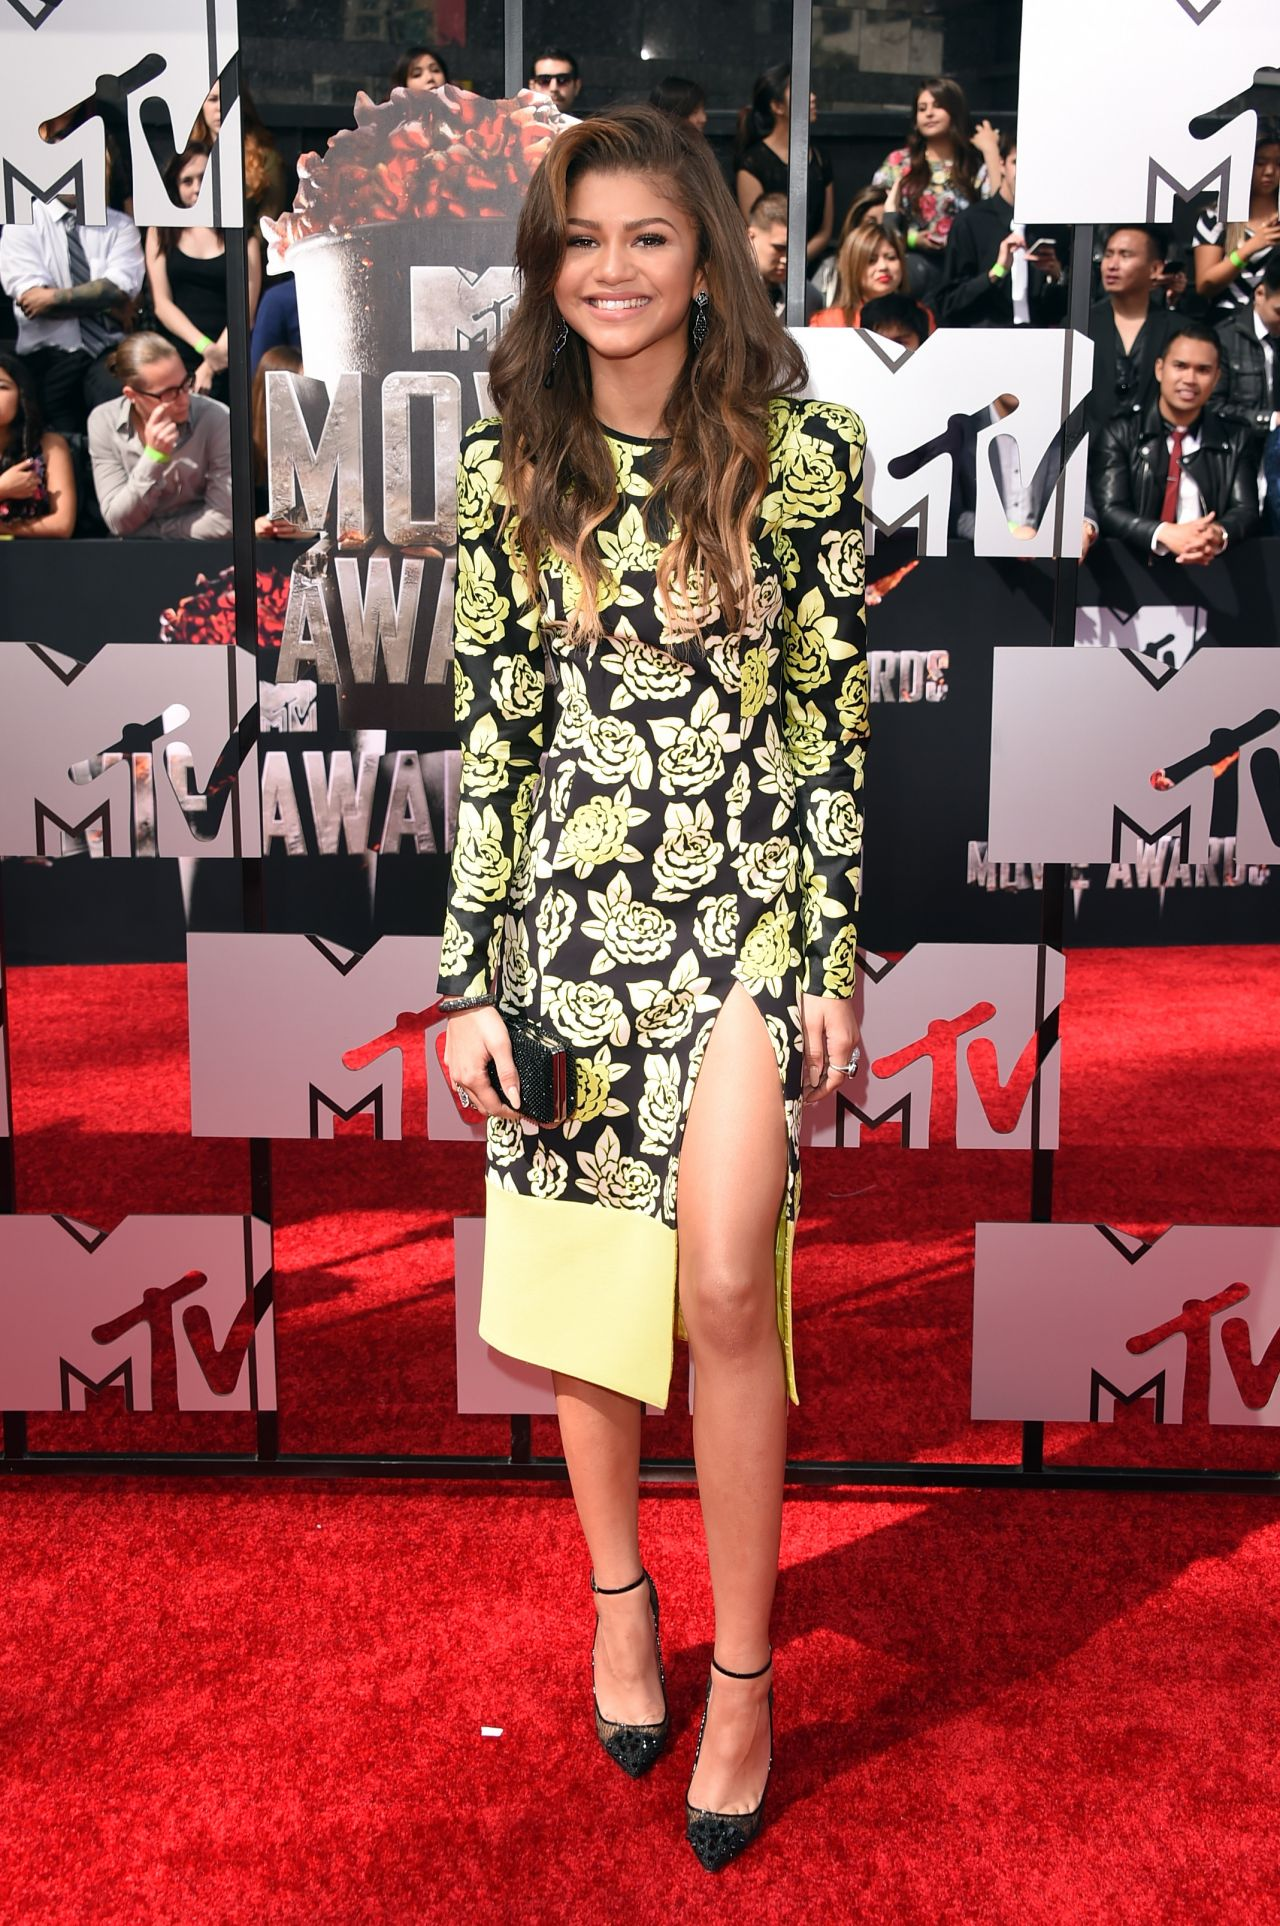 Zendaya Wearing Emanuel Ungaro Yellow And Black Floral